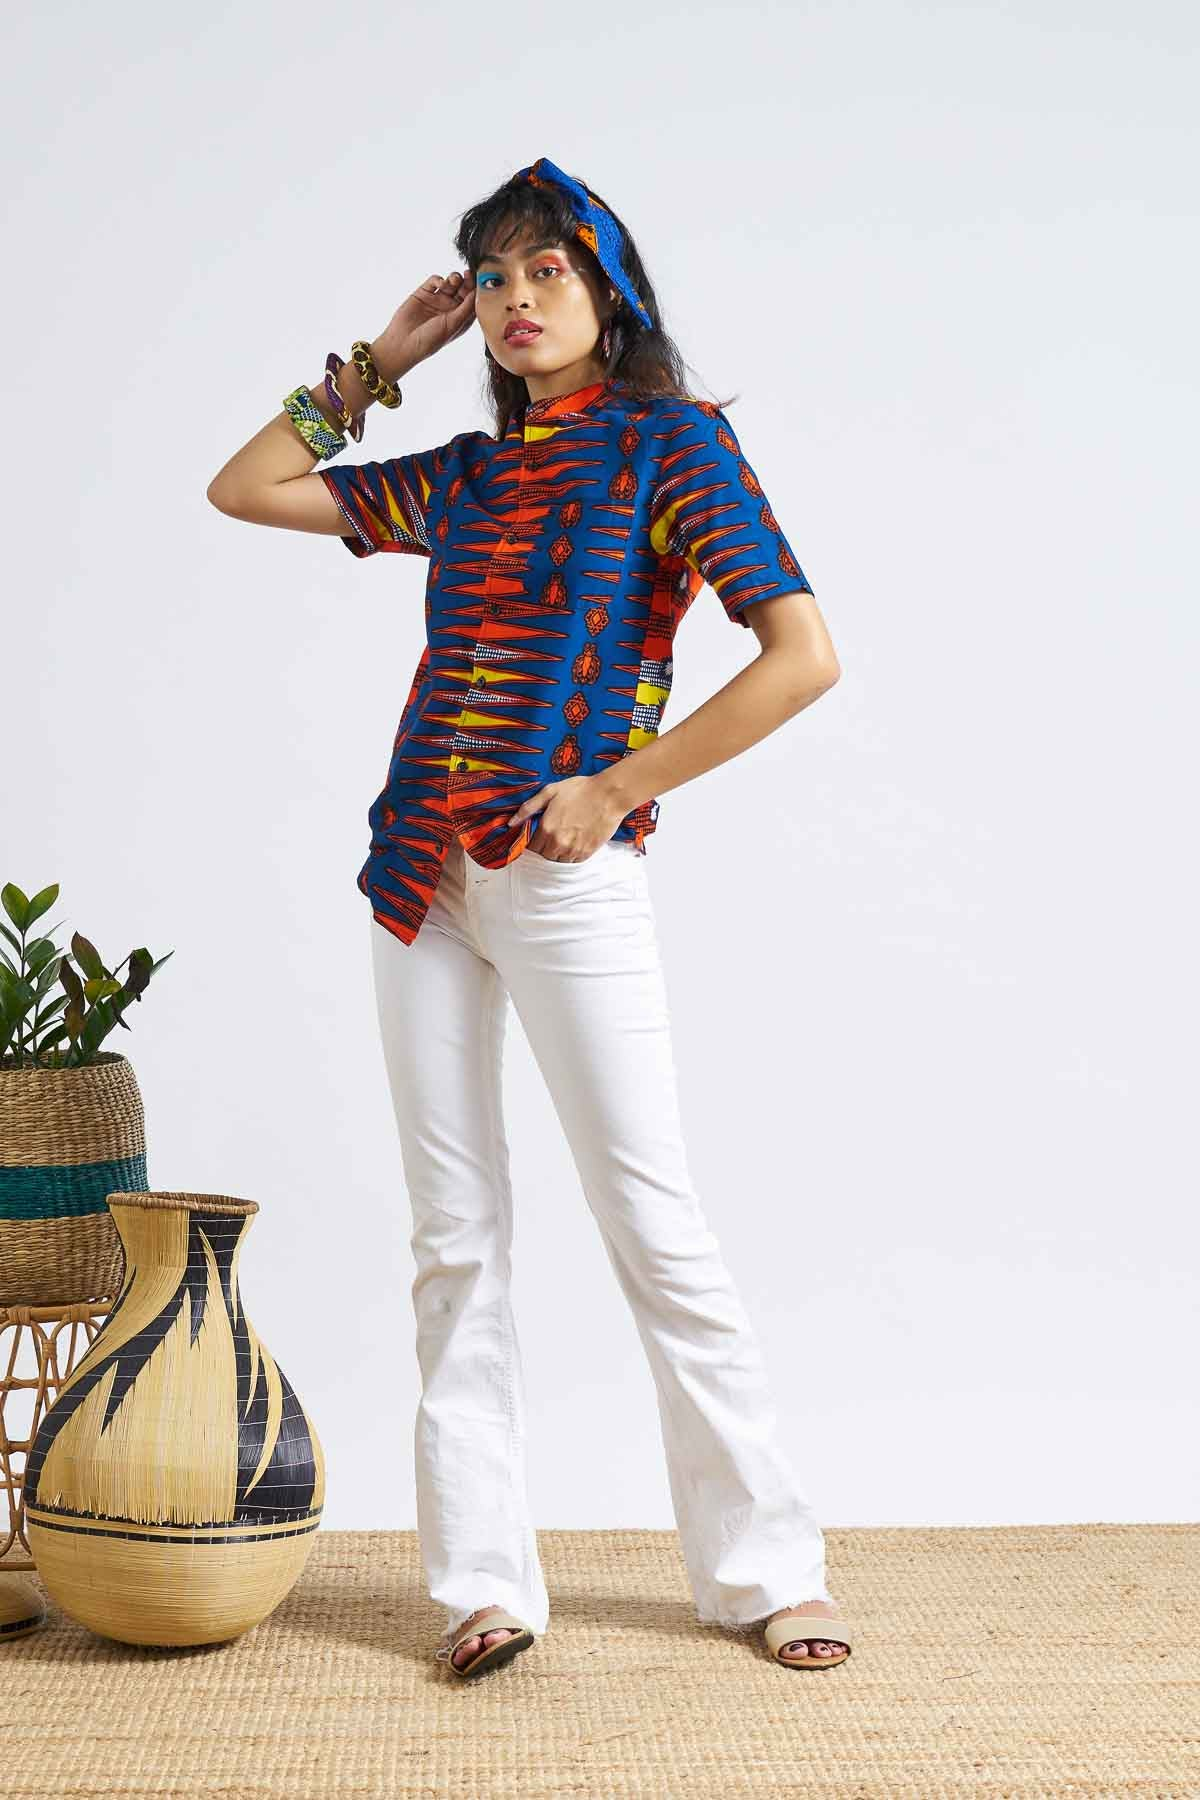 Unathi Unisex Shirt - Red/Yellow/Blue